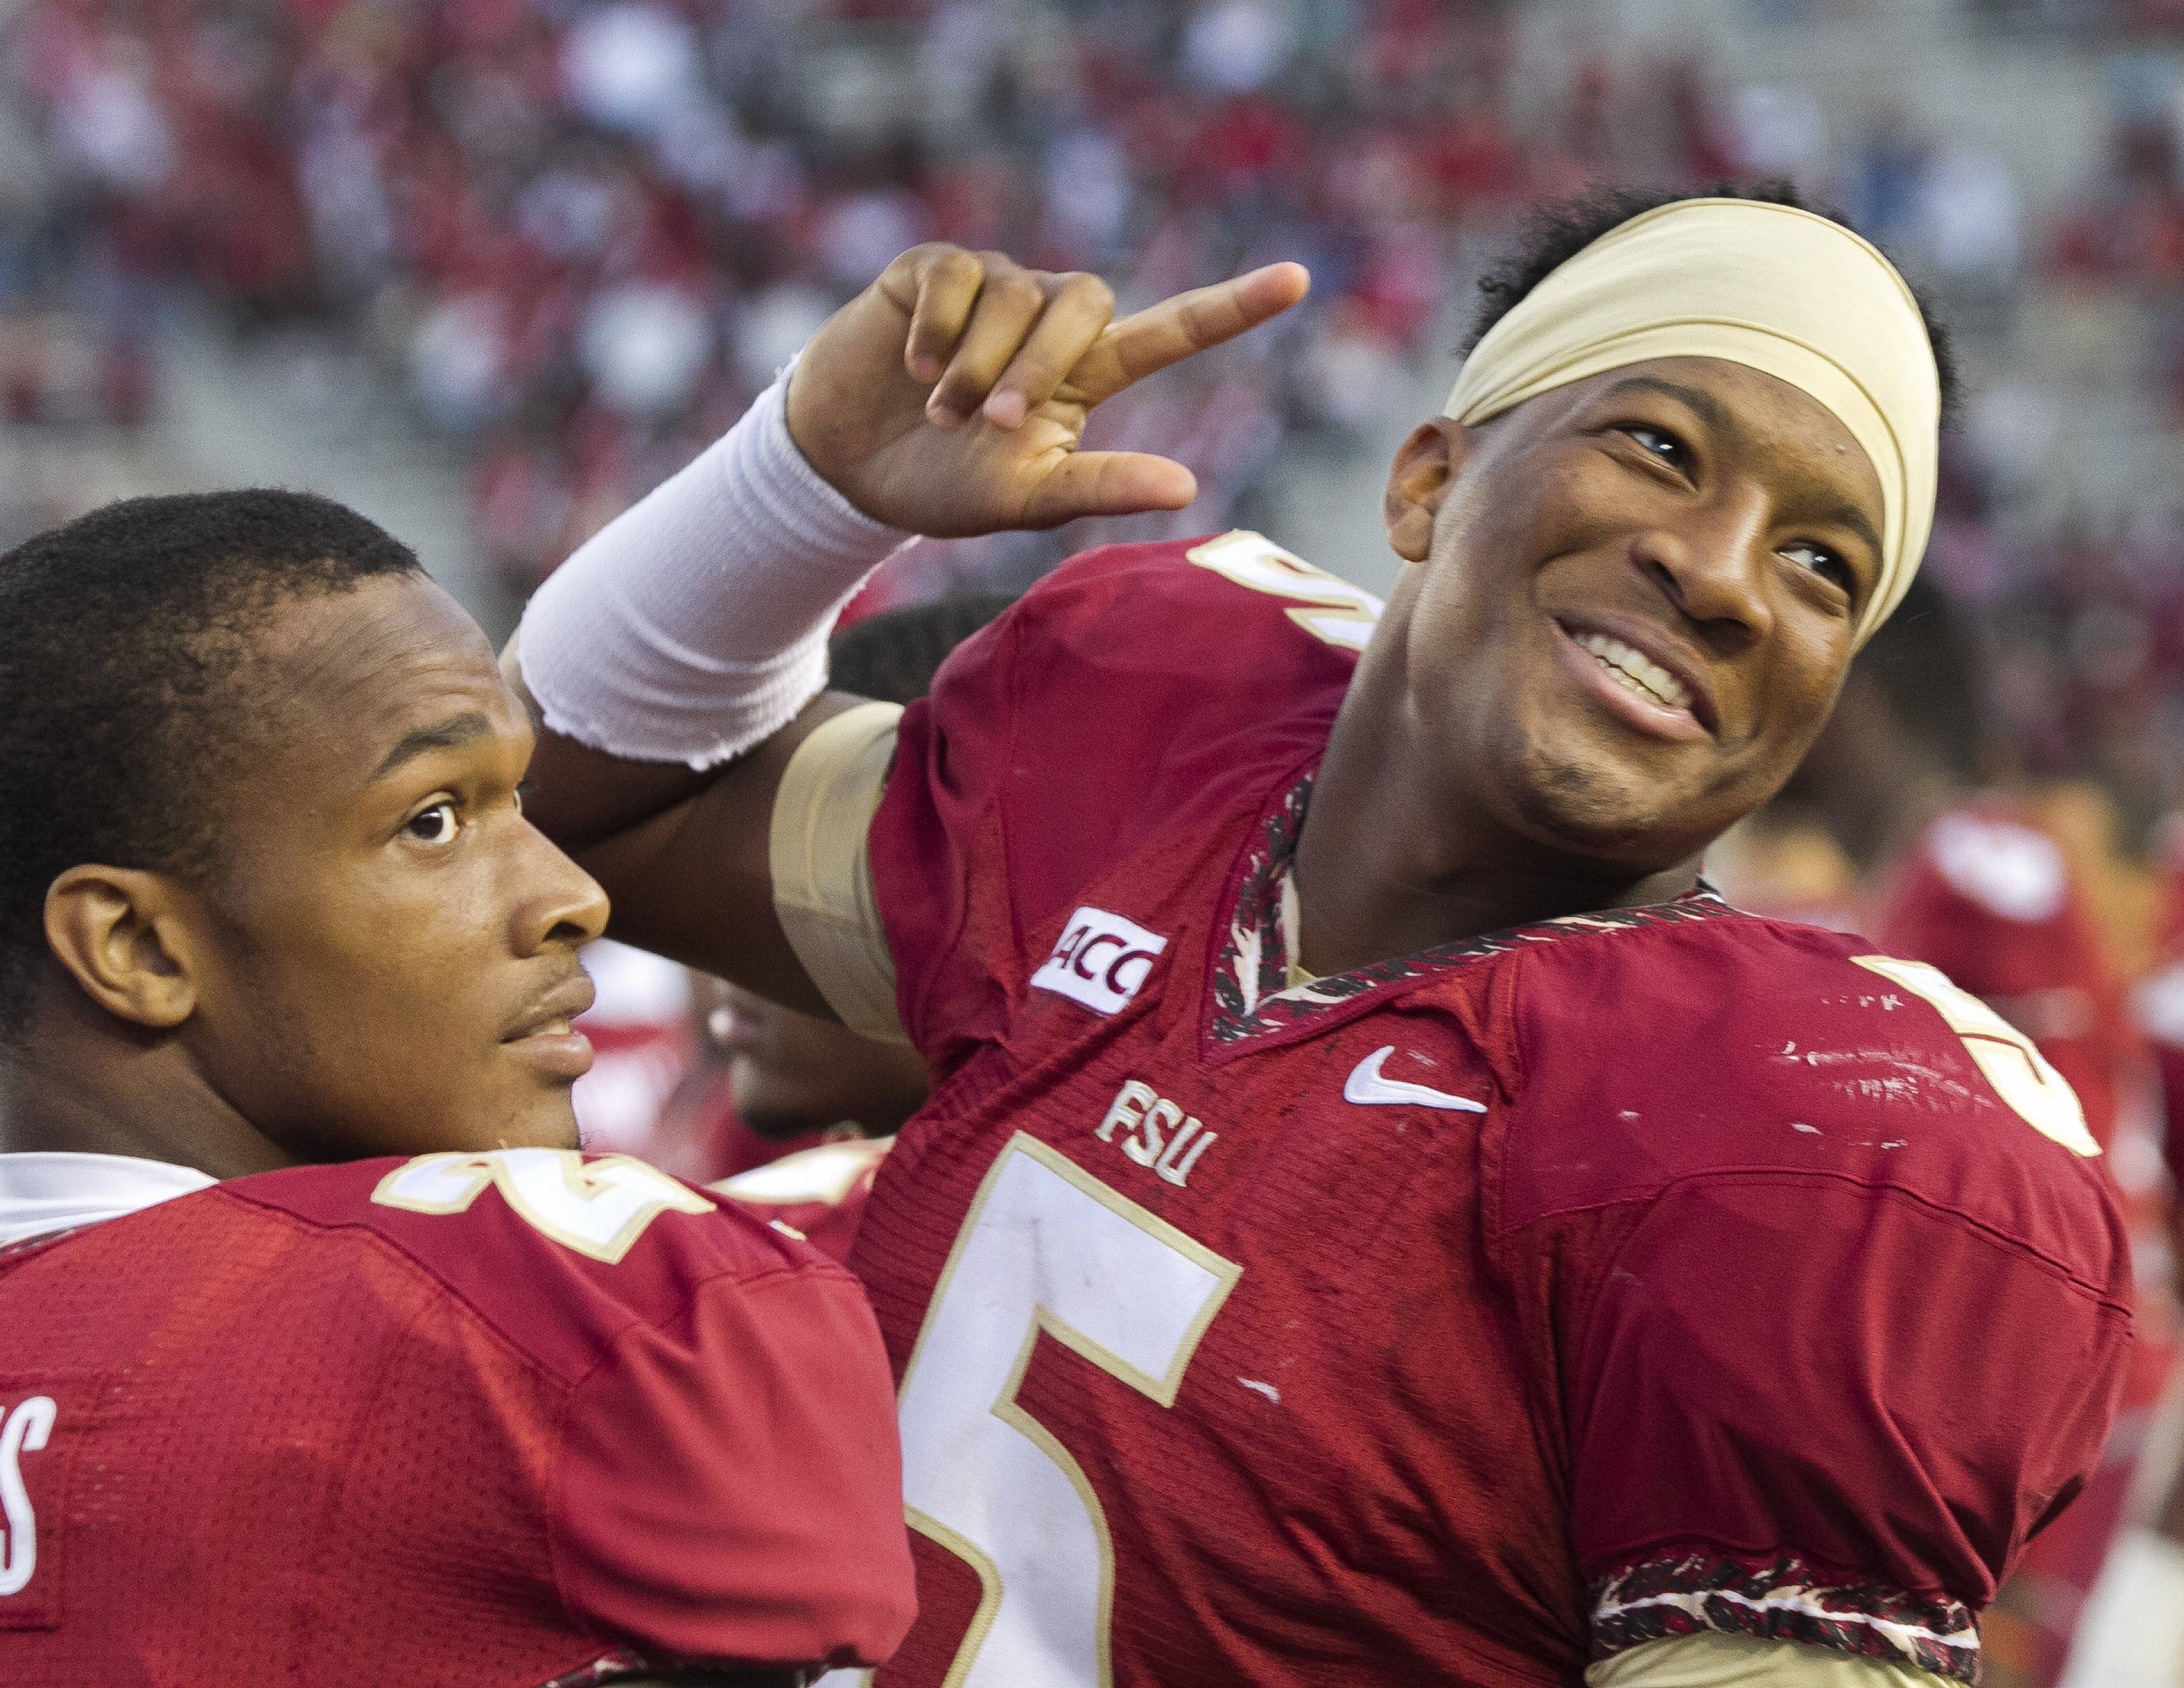 Jameis Winston (5) acknowledging a fan, FSU vs NC State,  10-26-13, (Photo by Steve Musco)